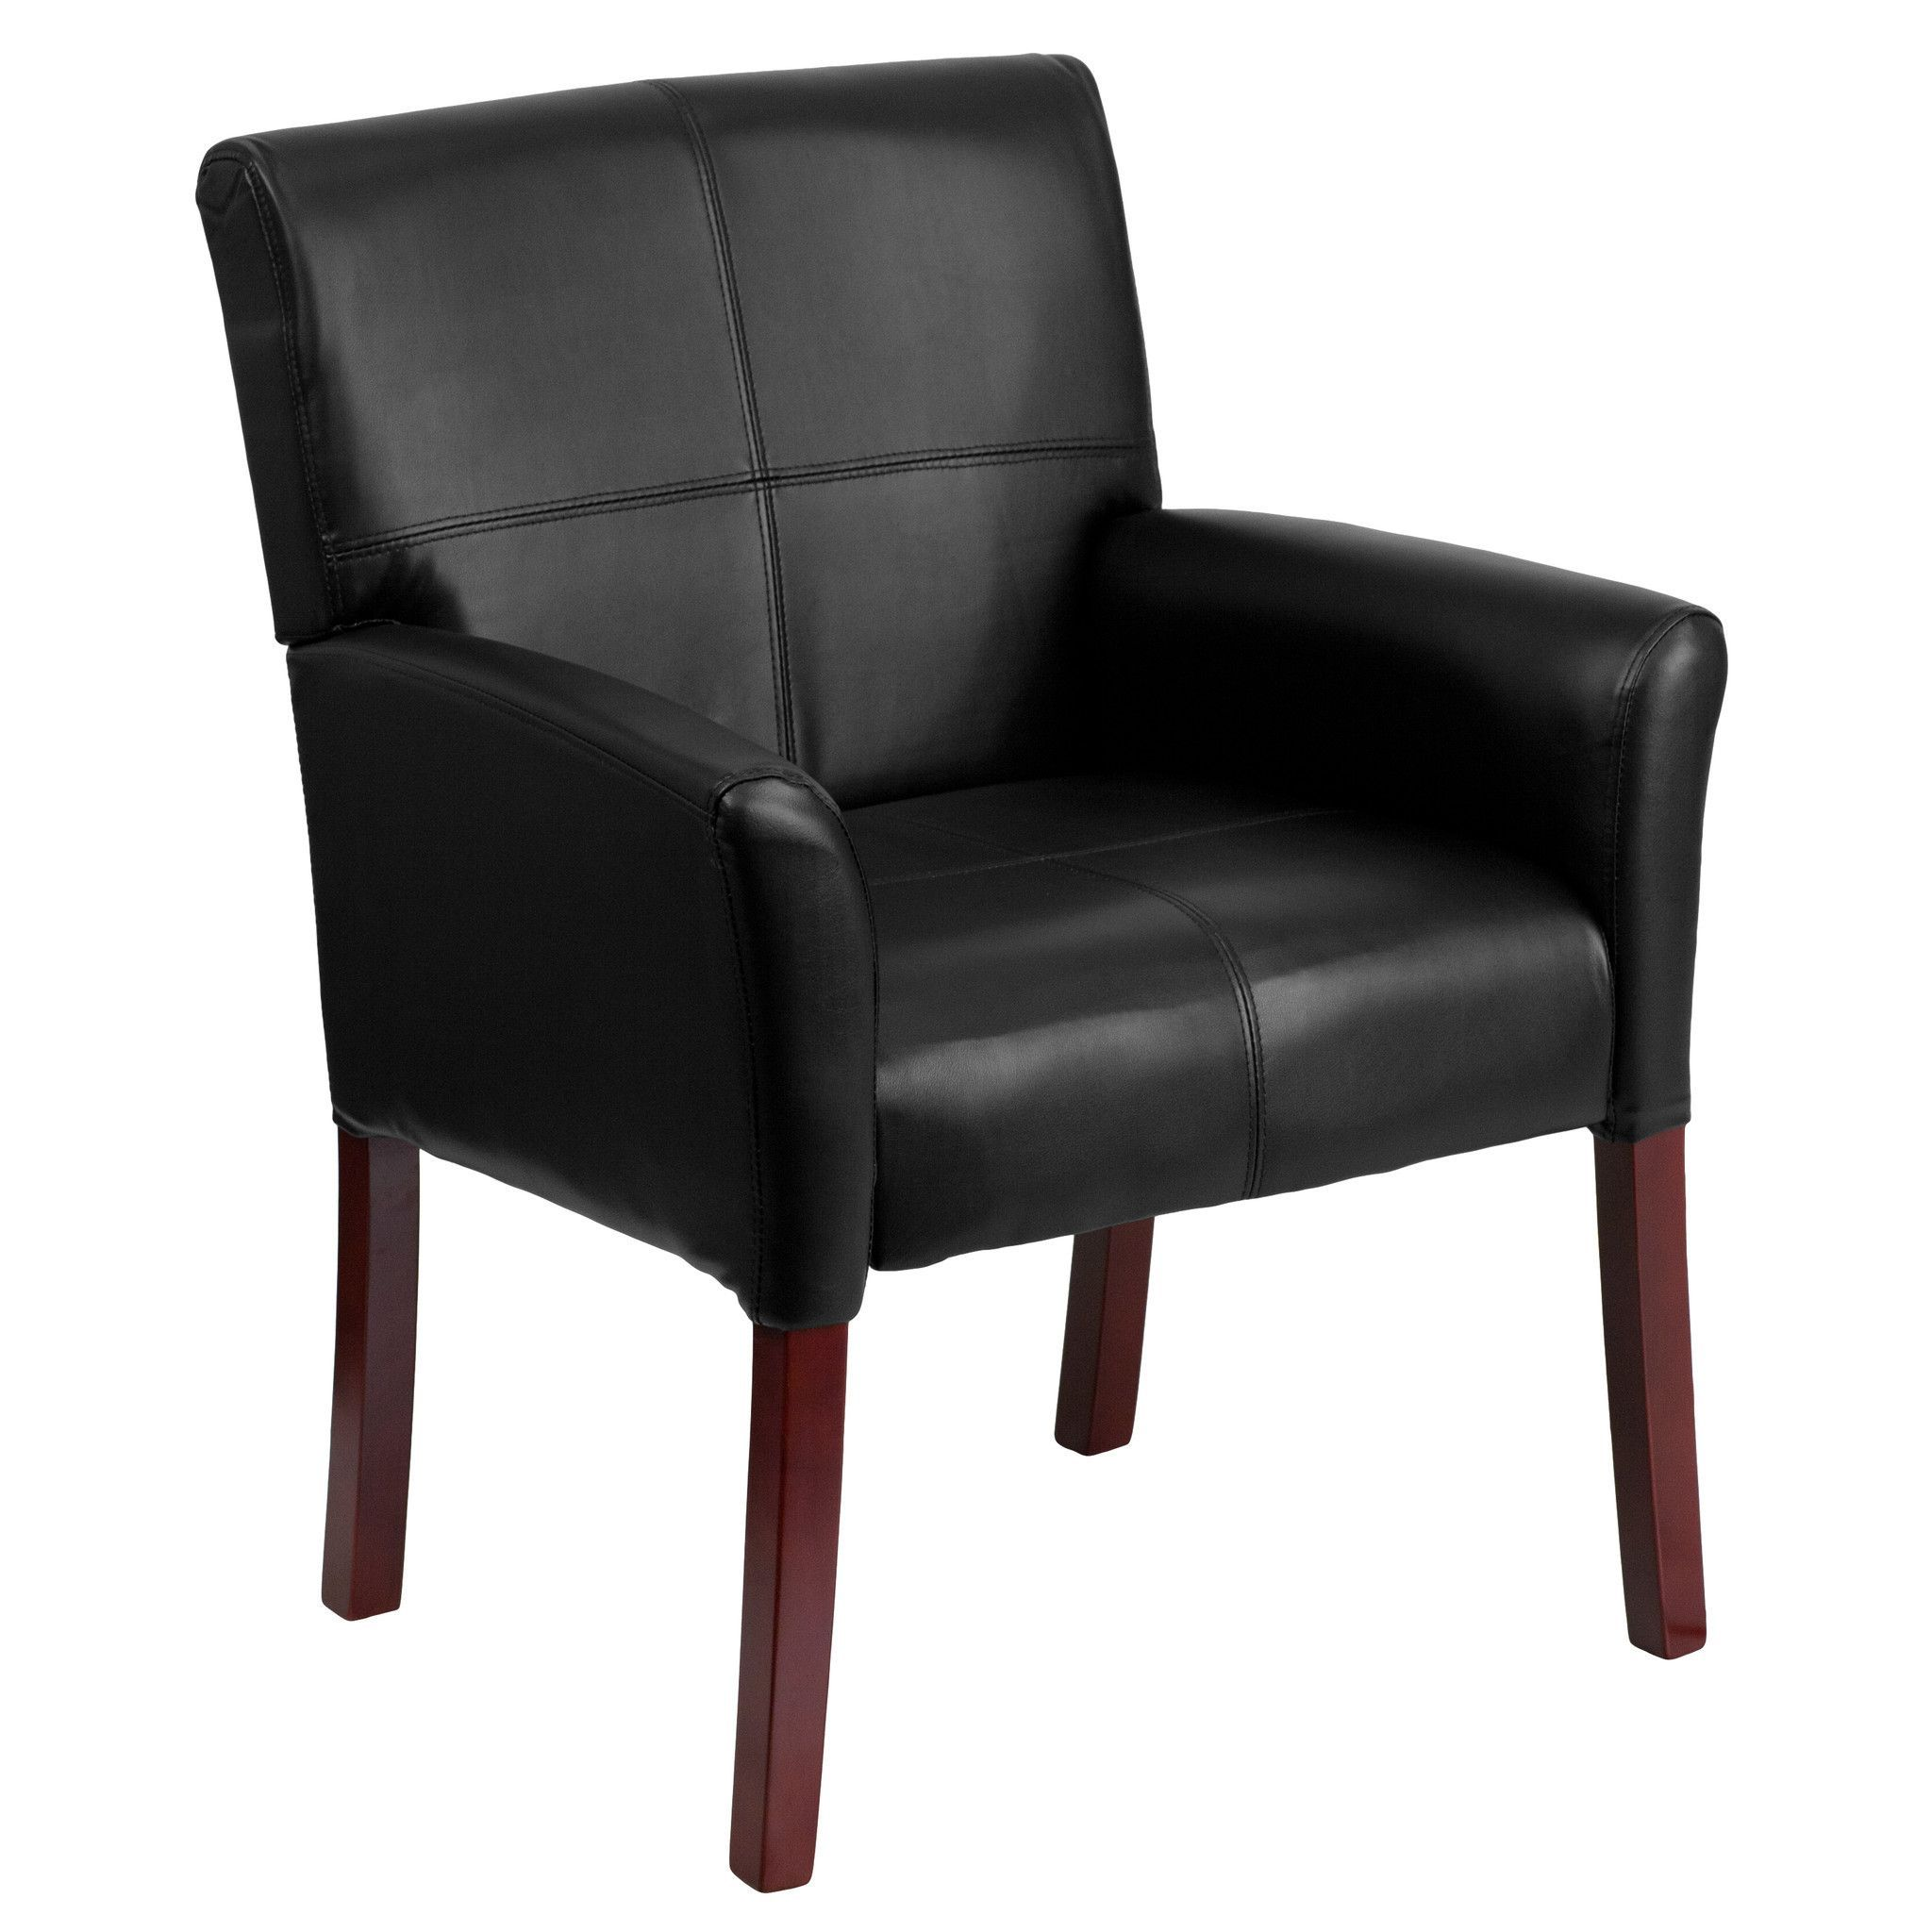 Flash furniture black leather executive side chair or